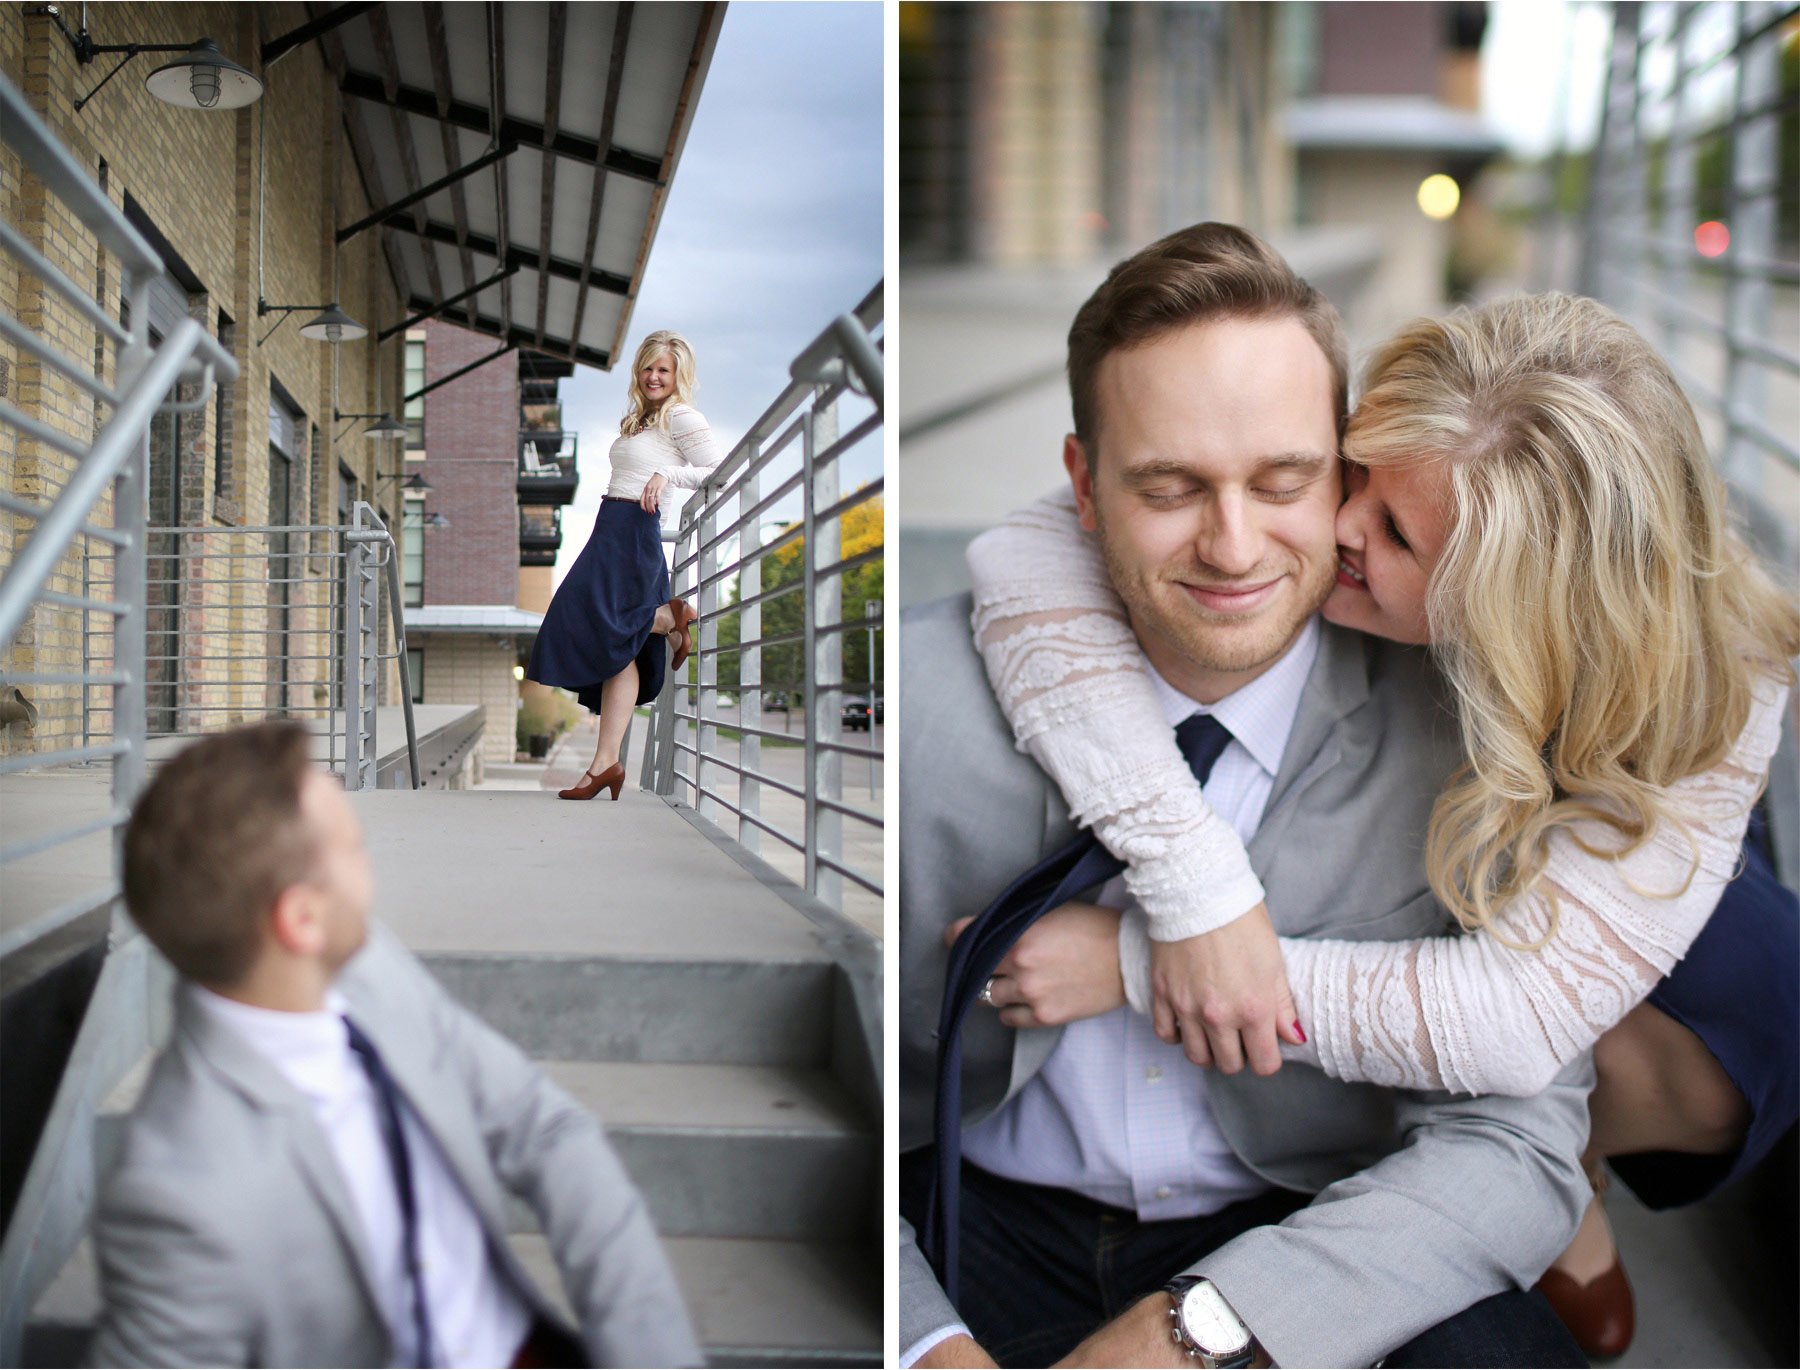 04-Minneapolis-Minnesota-Wedding-Photographer-by-Andrew-Vick-Photography-Fall-Autumn-Engagement-Bride-Groom-Downtown-Kiss-Mallory-and-Kyle.jpg